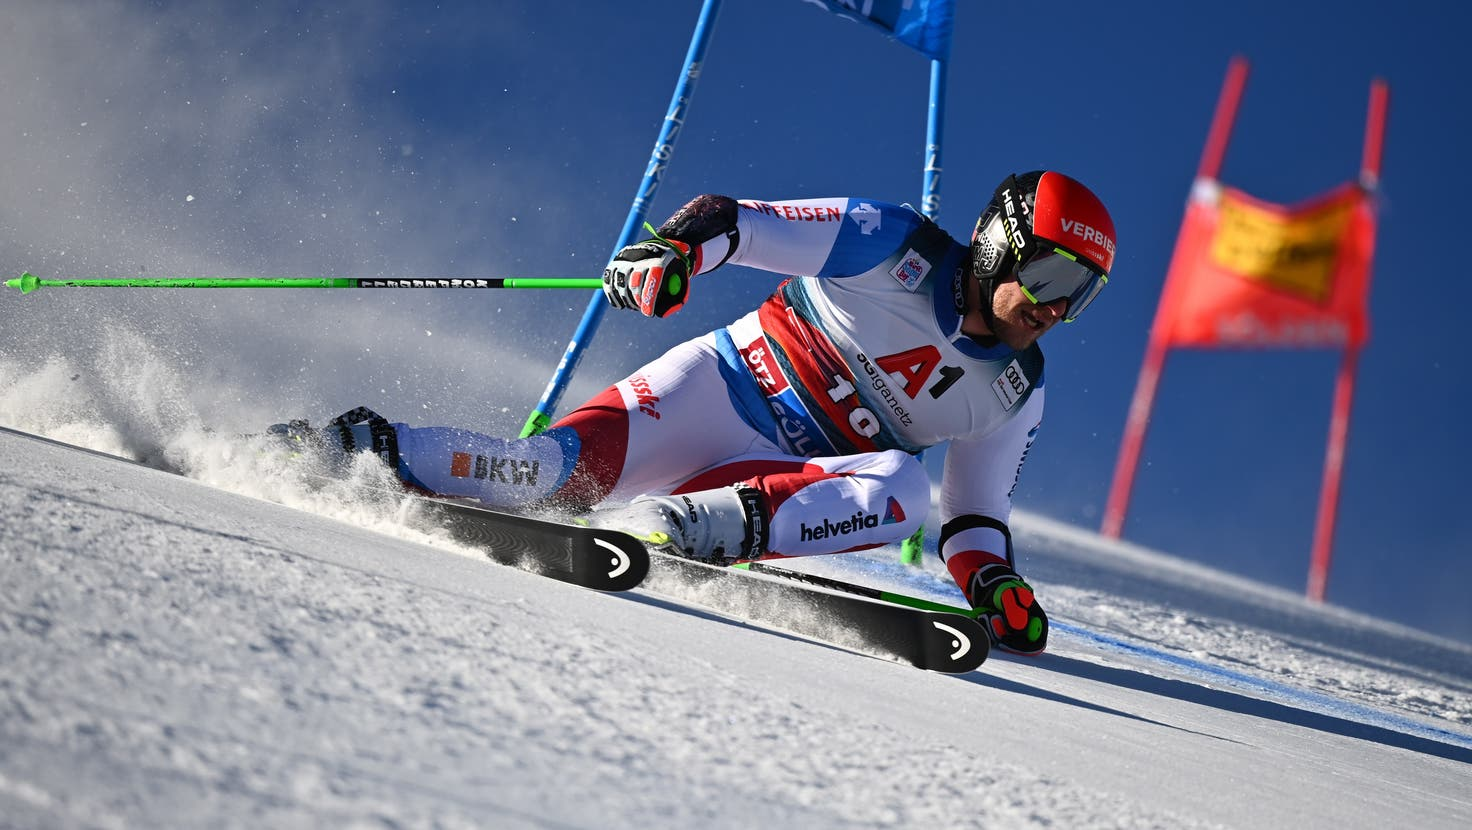 Marco Odermatt of Switzerland in action during the first run of the men's Giant Slalom race of the FIS Alpine Ski World Cup season on the Rettenbach glacier, in Soelden, Austria, Sunday, October 23, 2016. (KEYSTONE/Gian Ehrenzeller) (Gian Ehrenzeller / KEYSTONE)